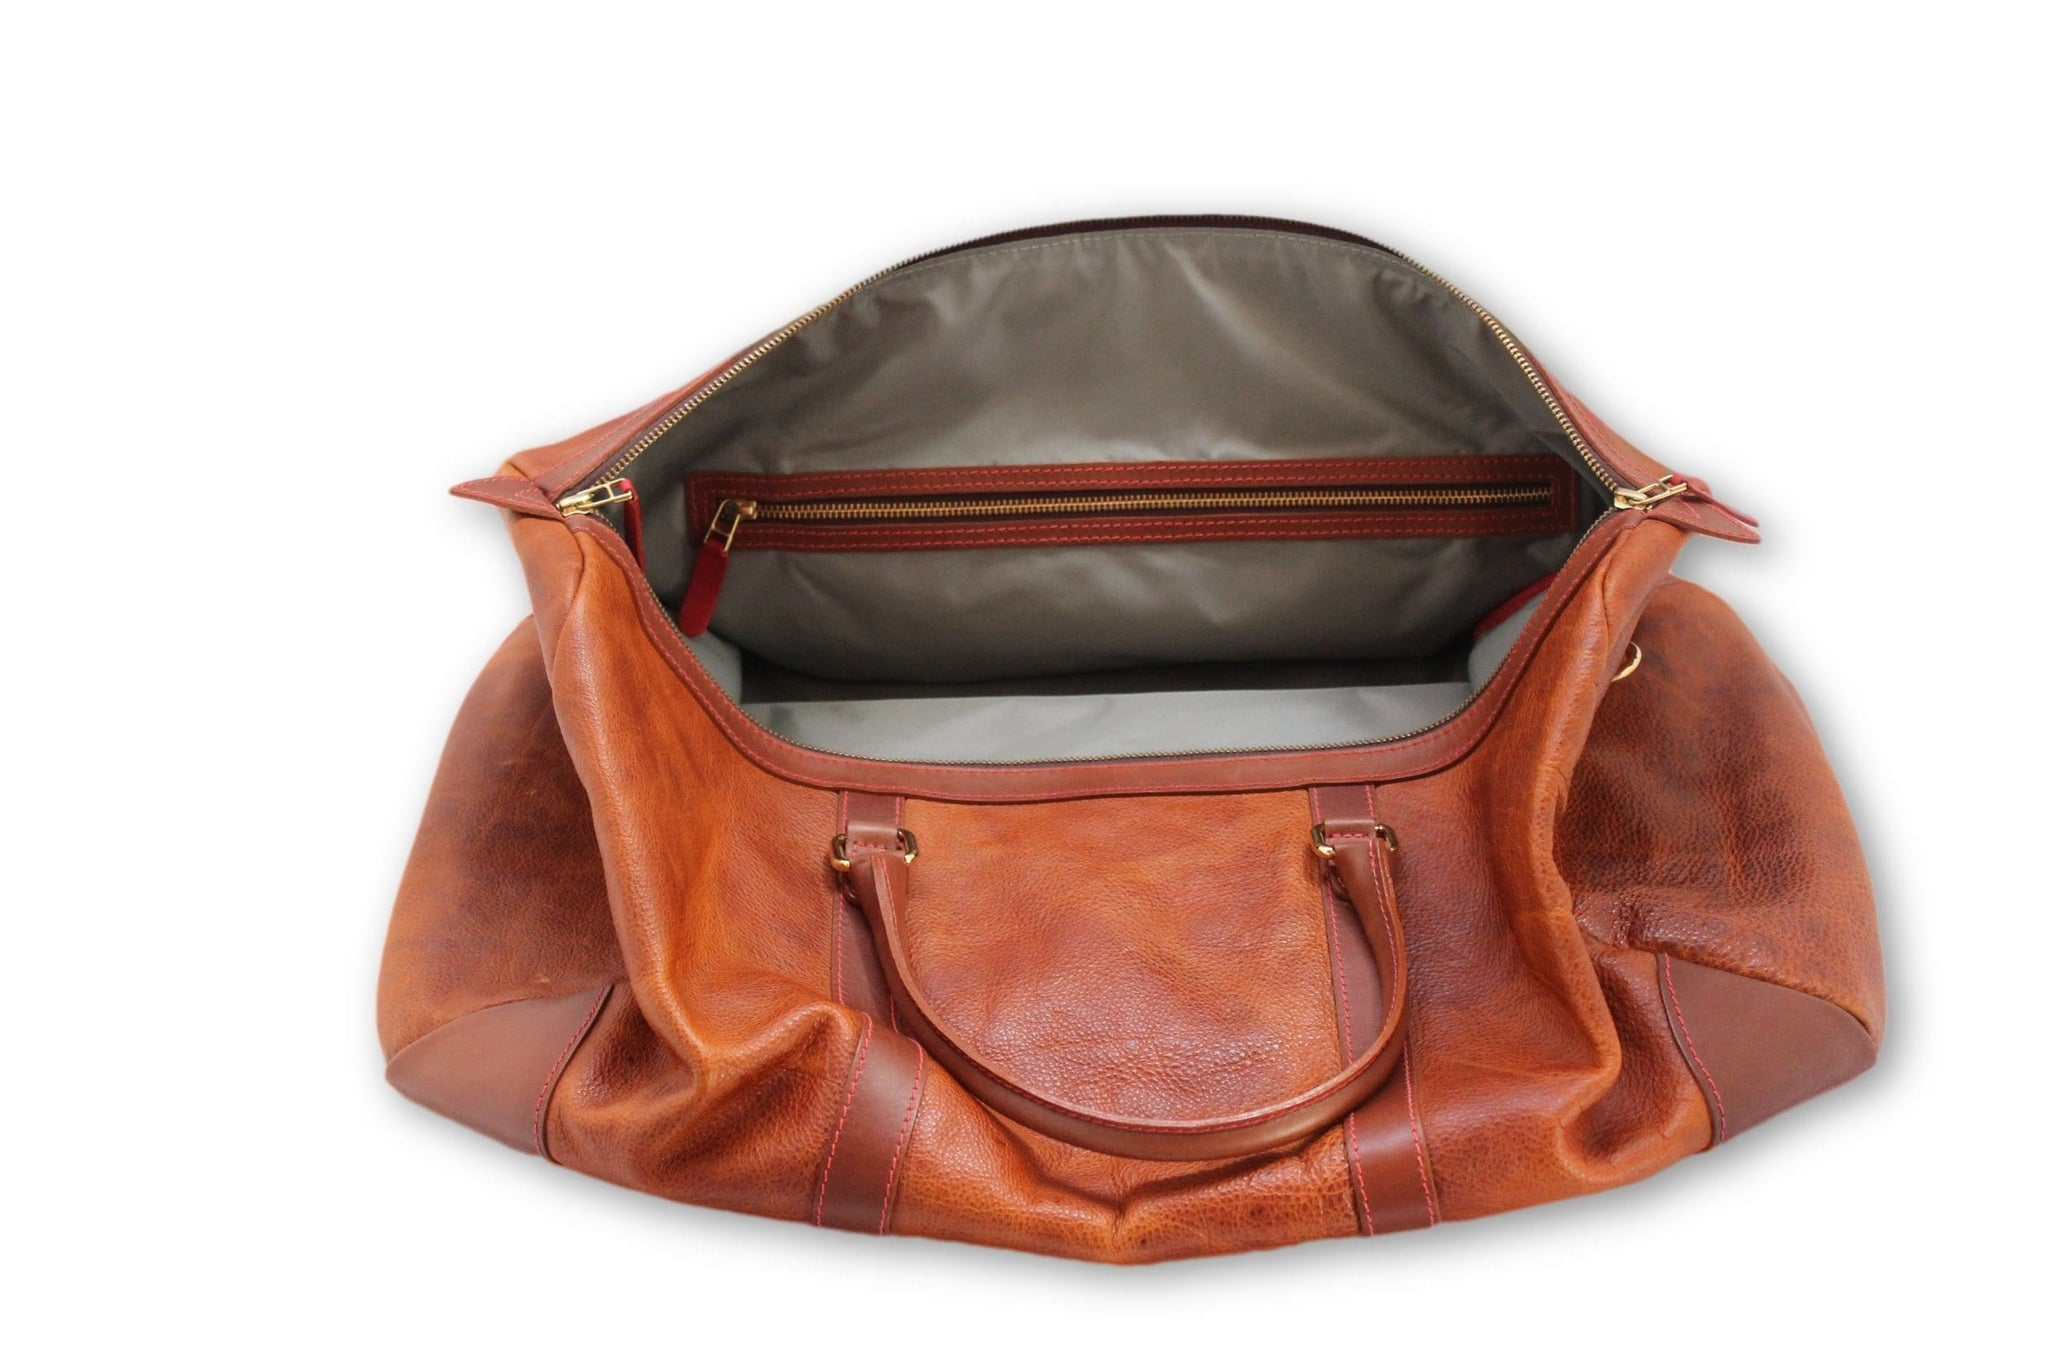 Weekend bag, brown leather